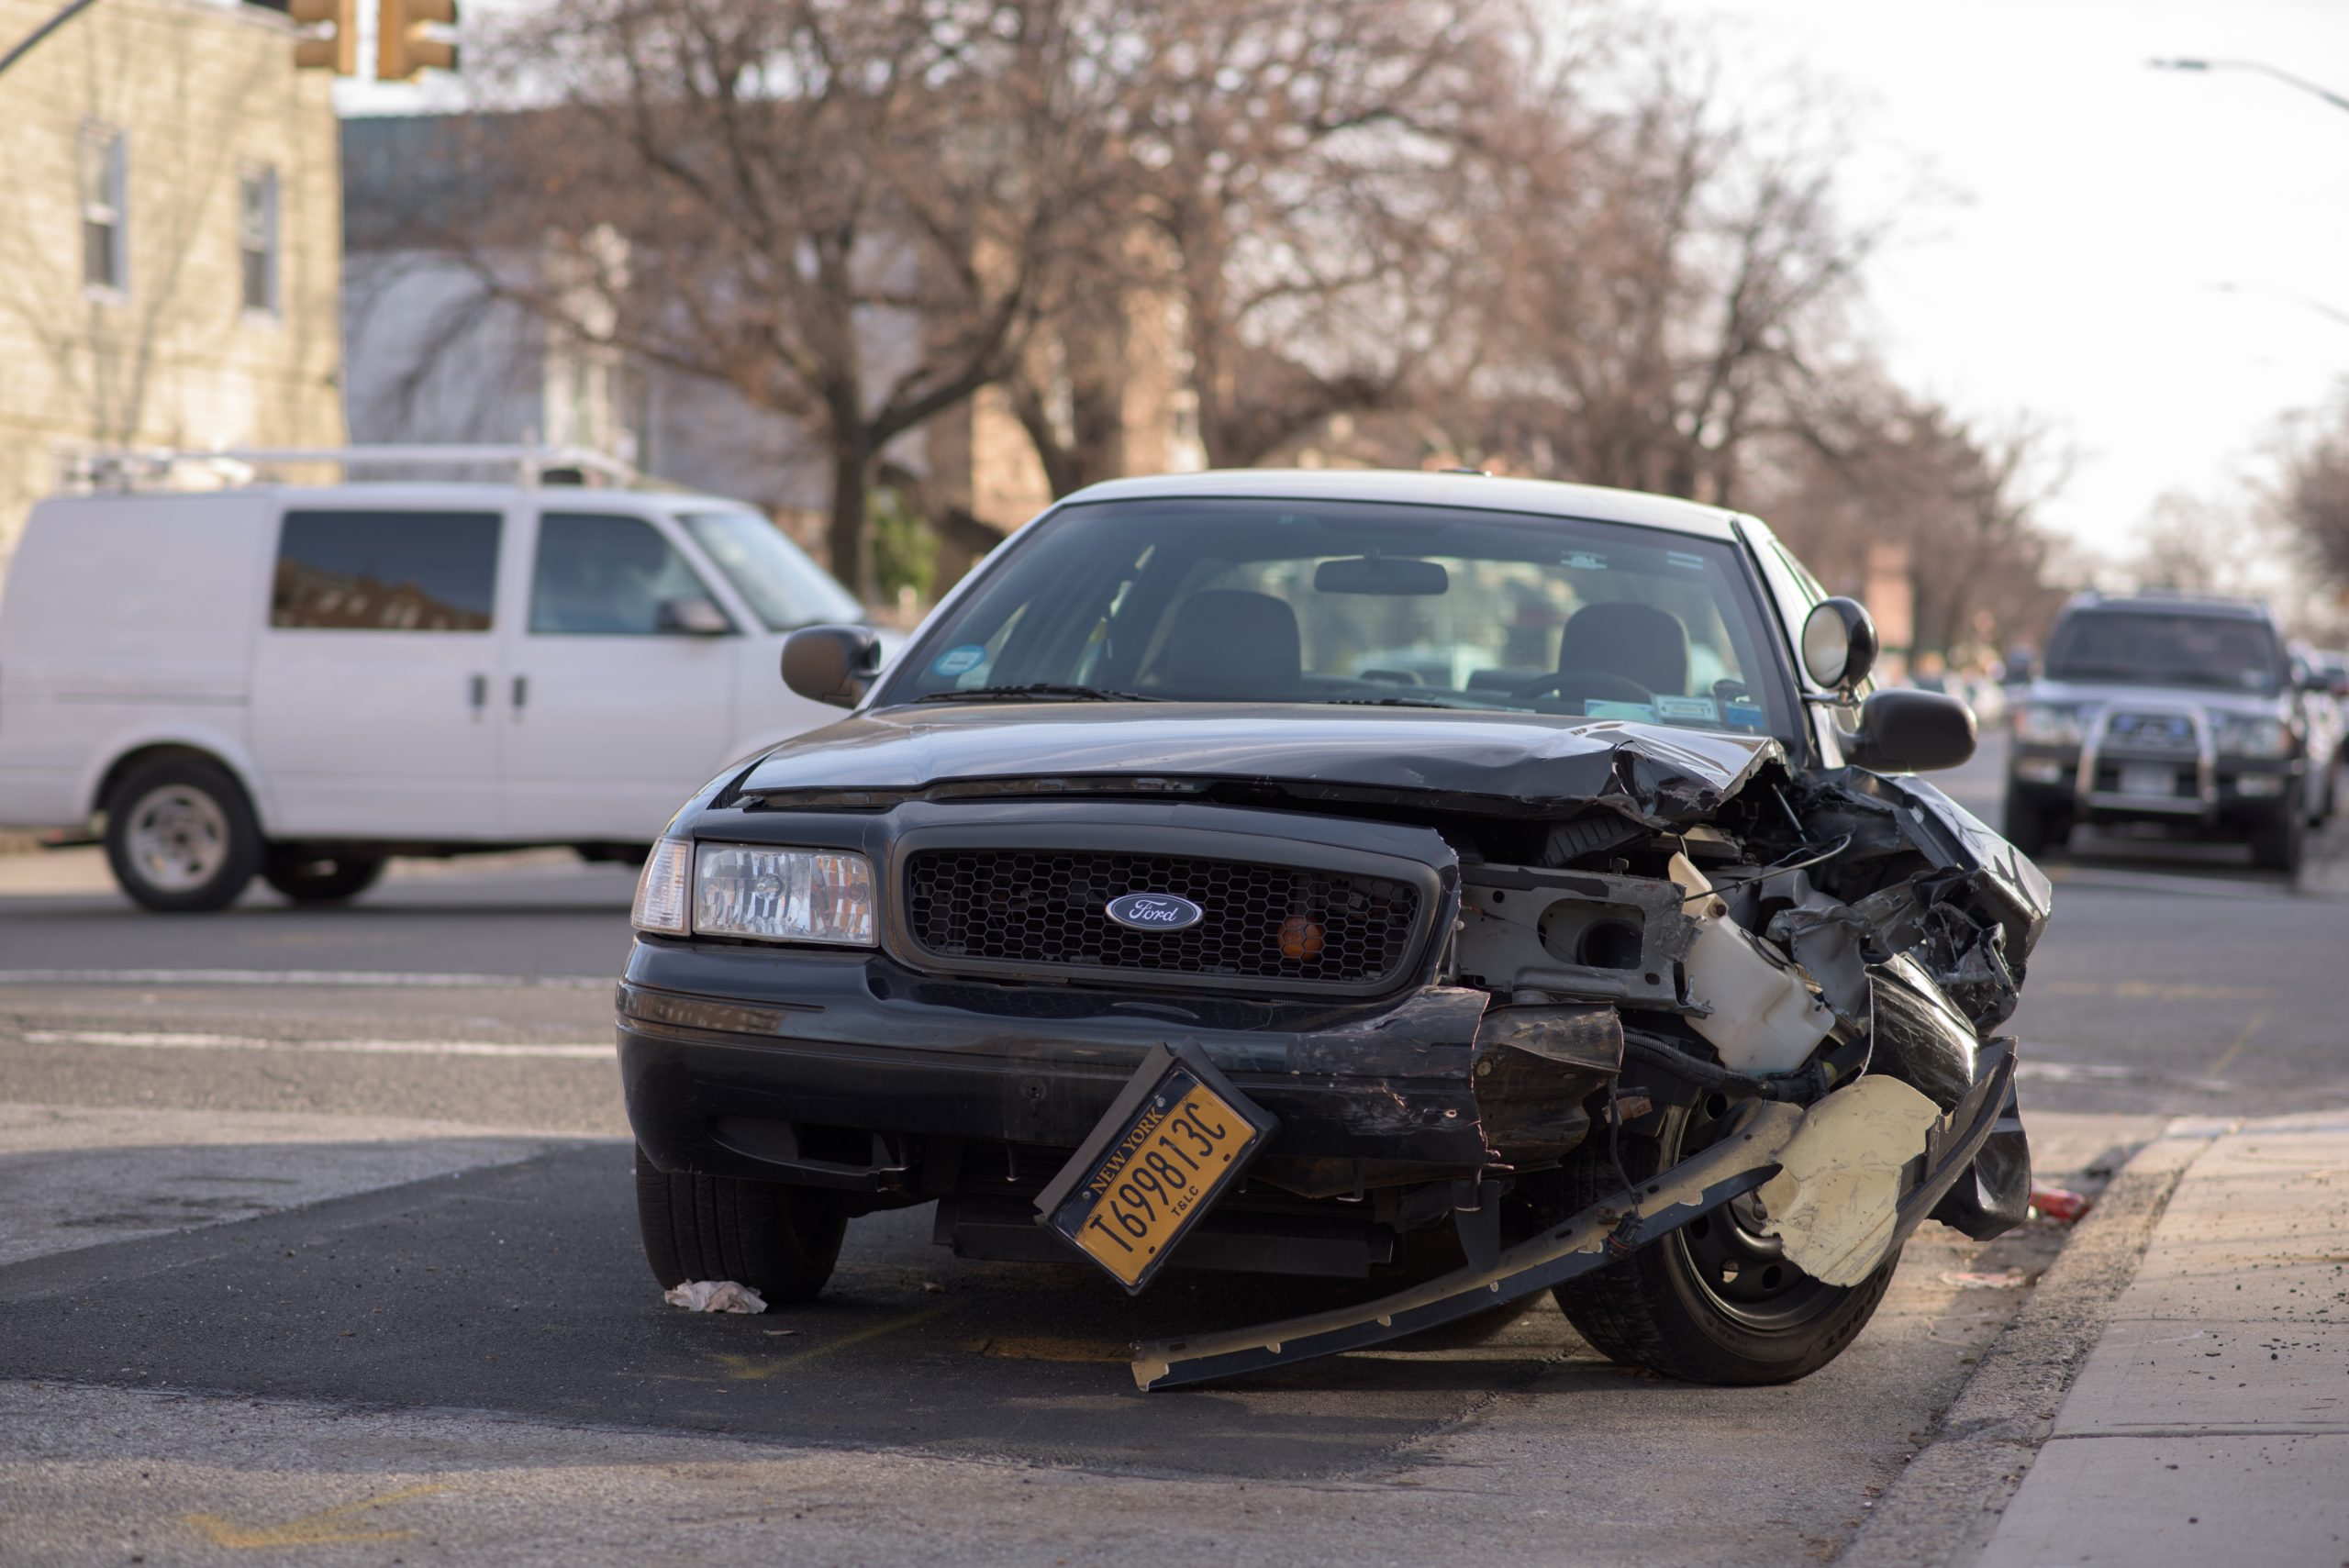 6 Delayed Symptoms You Need to Look for after a Car Accident